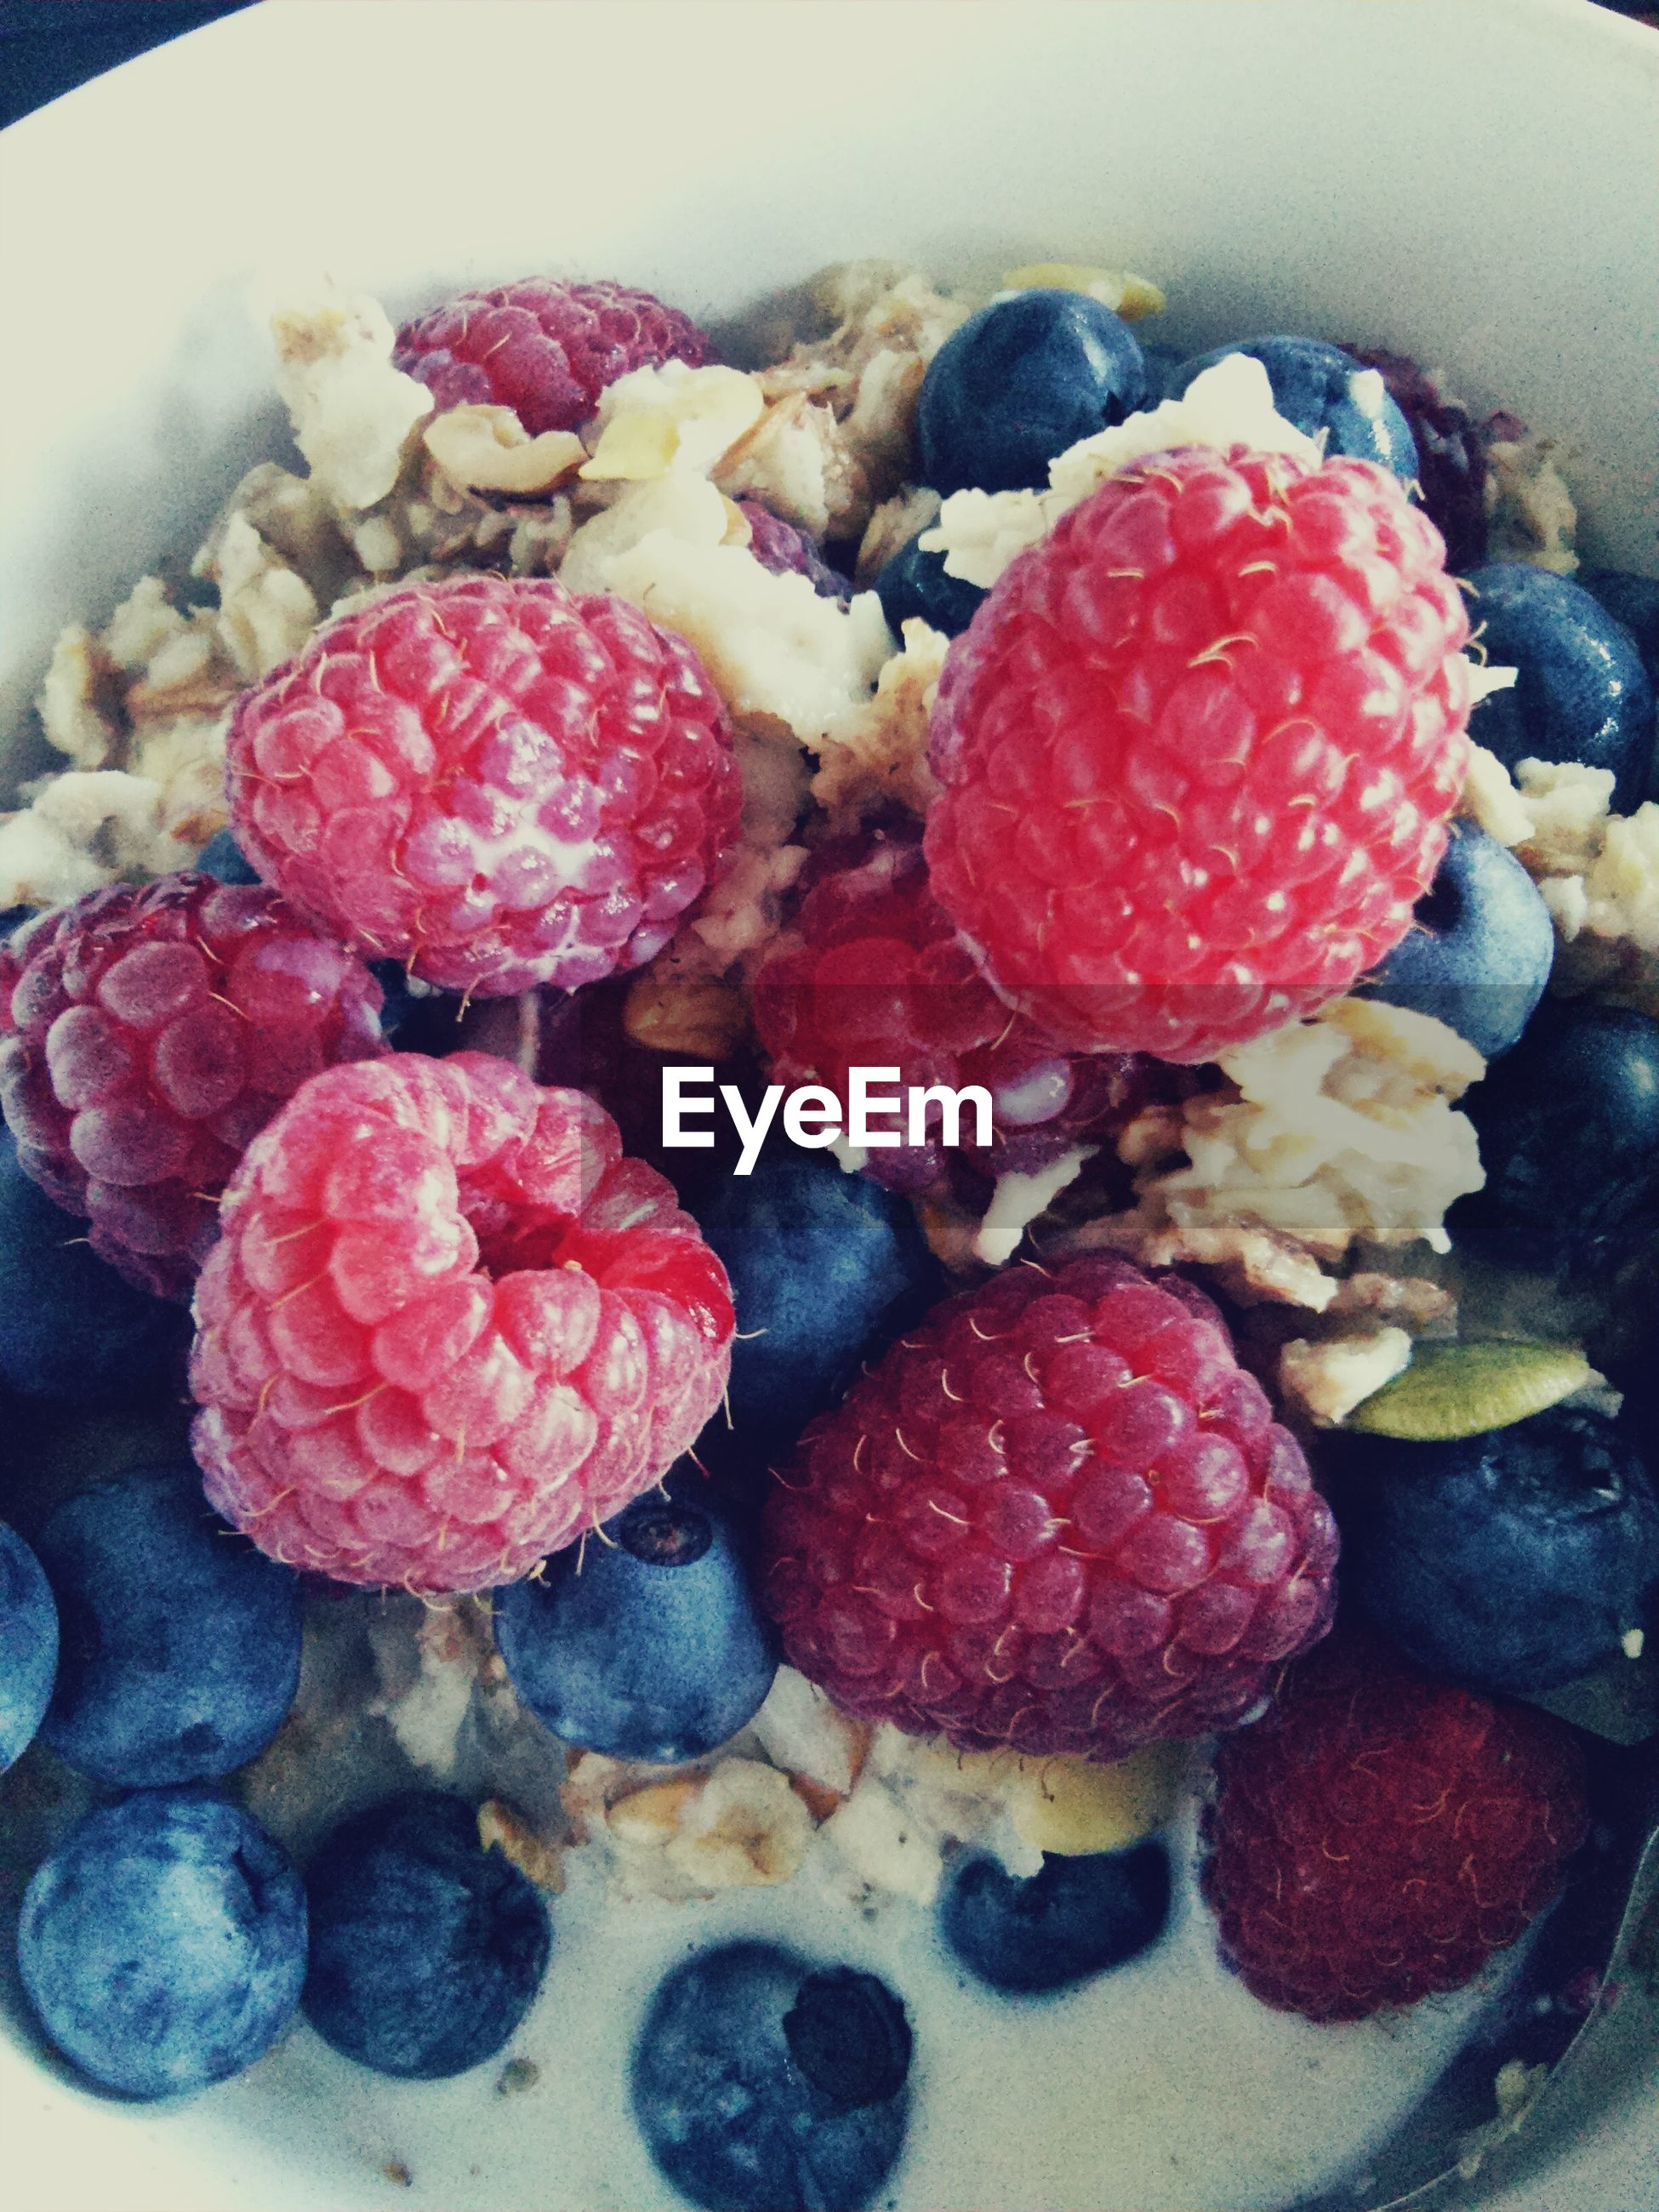 fruit, strawberry, food and drink, food, raspberry, freshness, berry fruit, blueberry, sweet food, dessert, healthy eating, berry, indulgence, ready-to-eat, no people, close-up, indoors, temptation, homemade, day